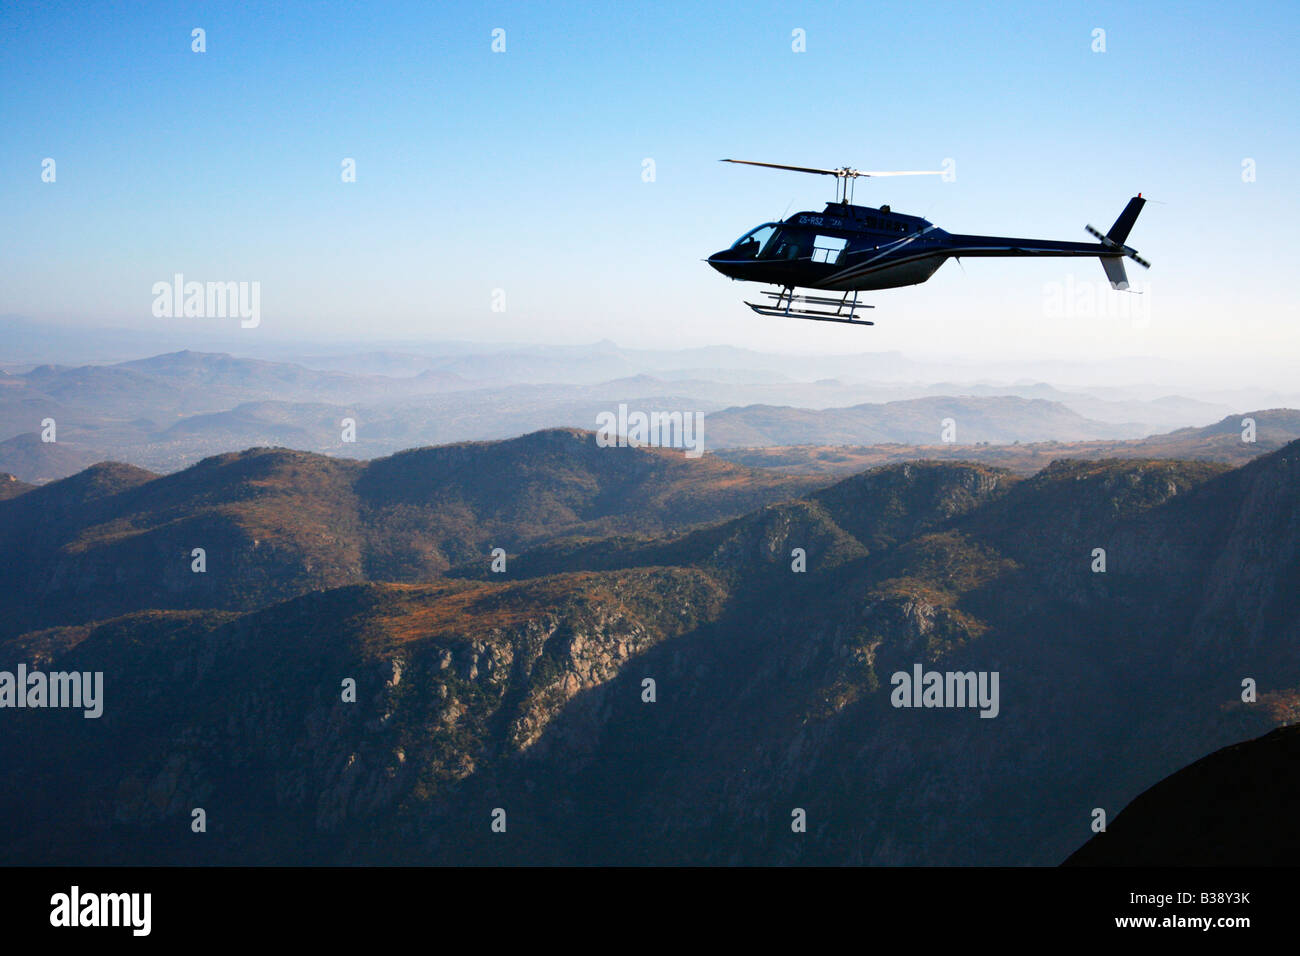 Aerial view of a helicopter flying in a scenic mountainous area - Stock Image